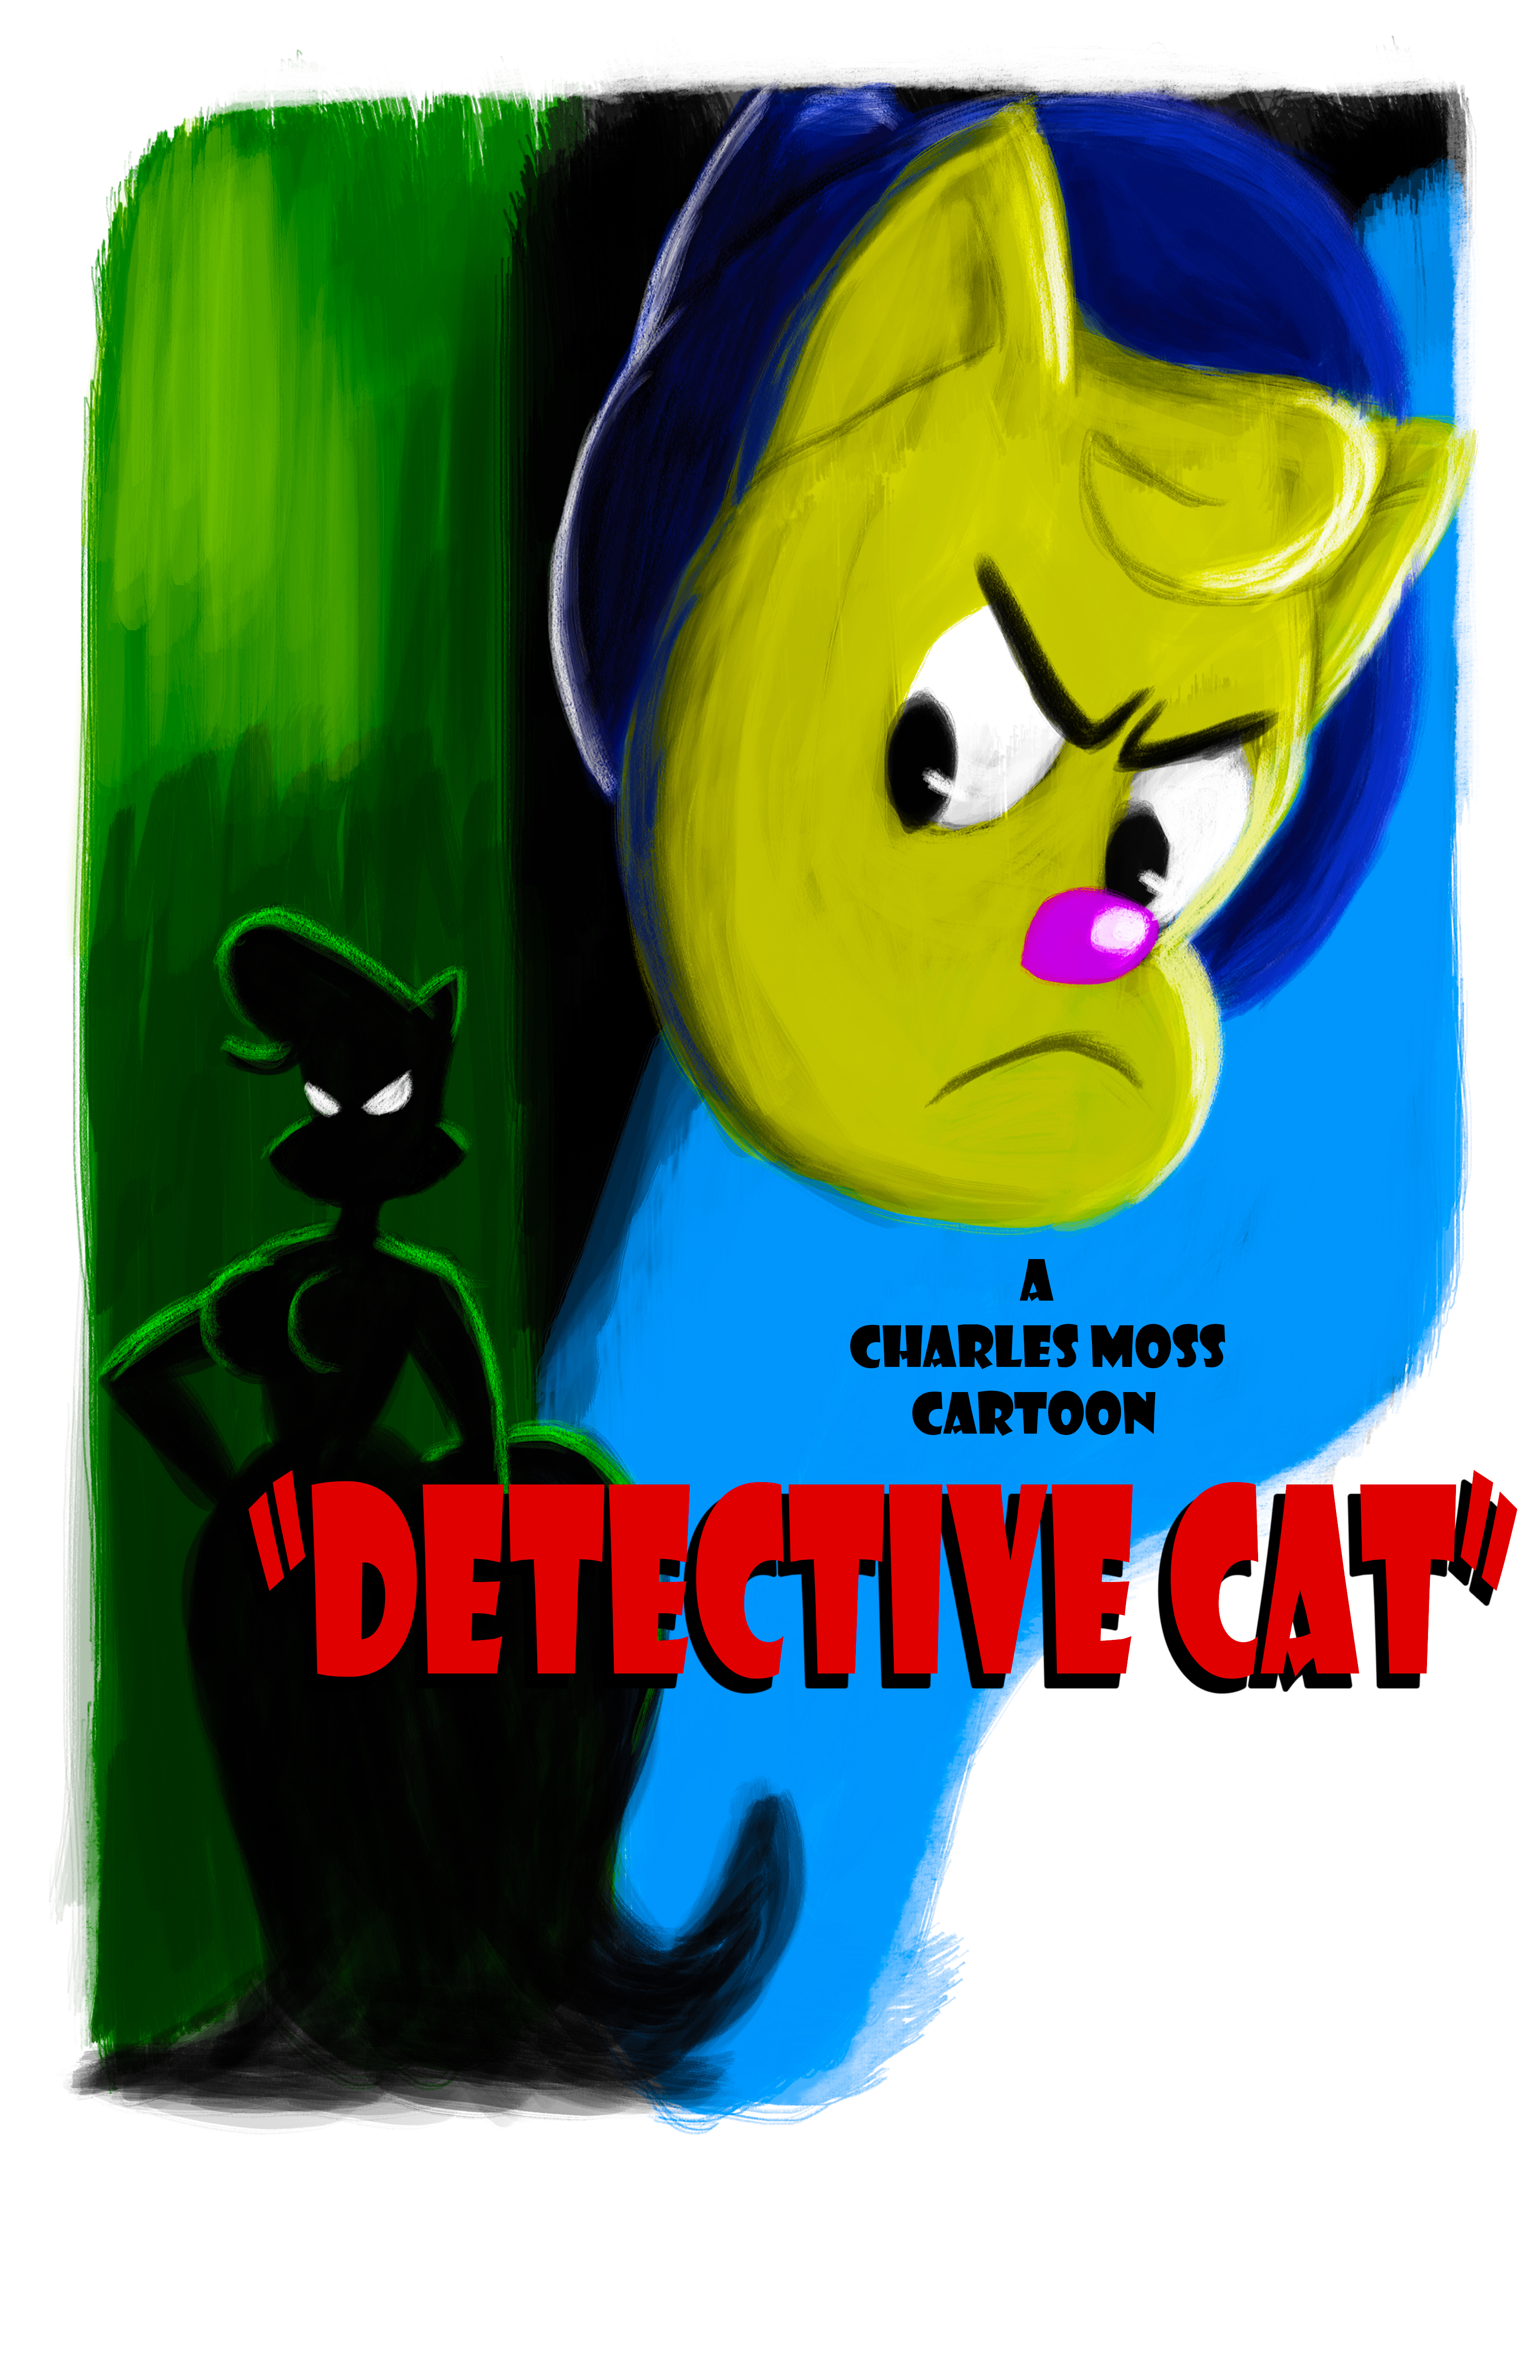 Detective Cat Poster